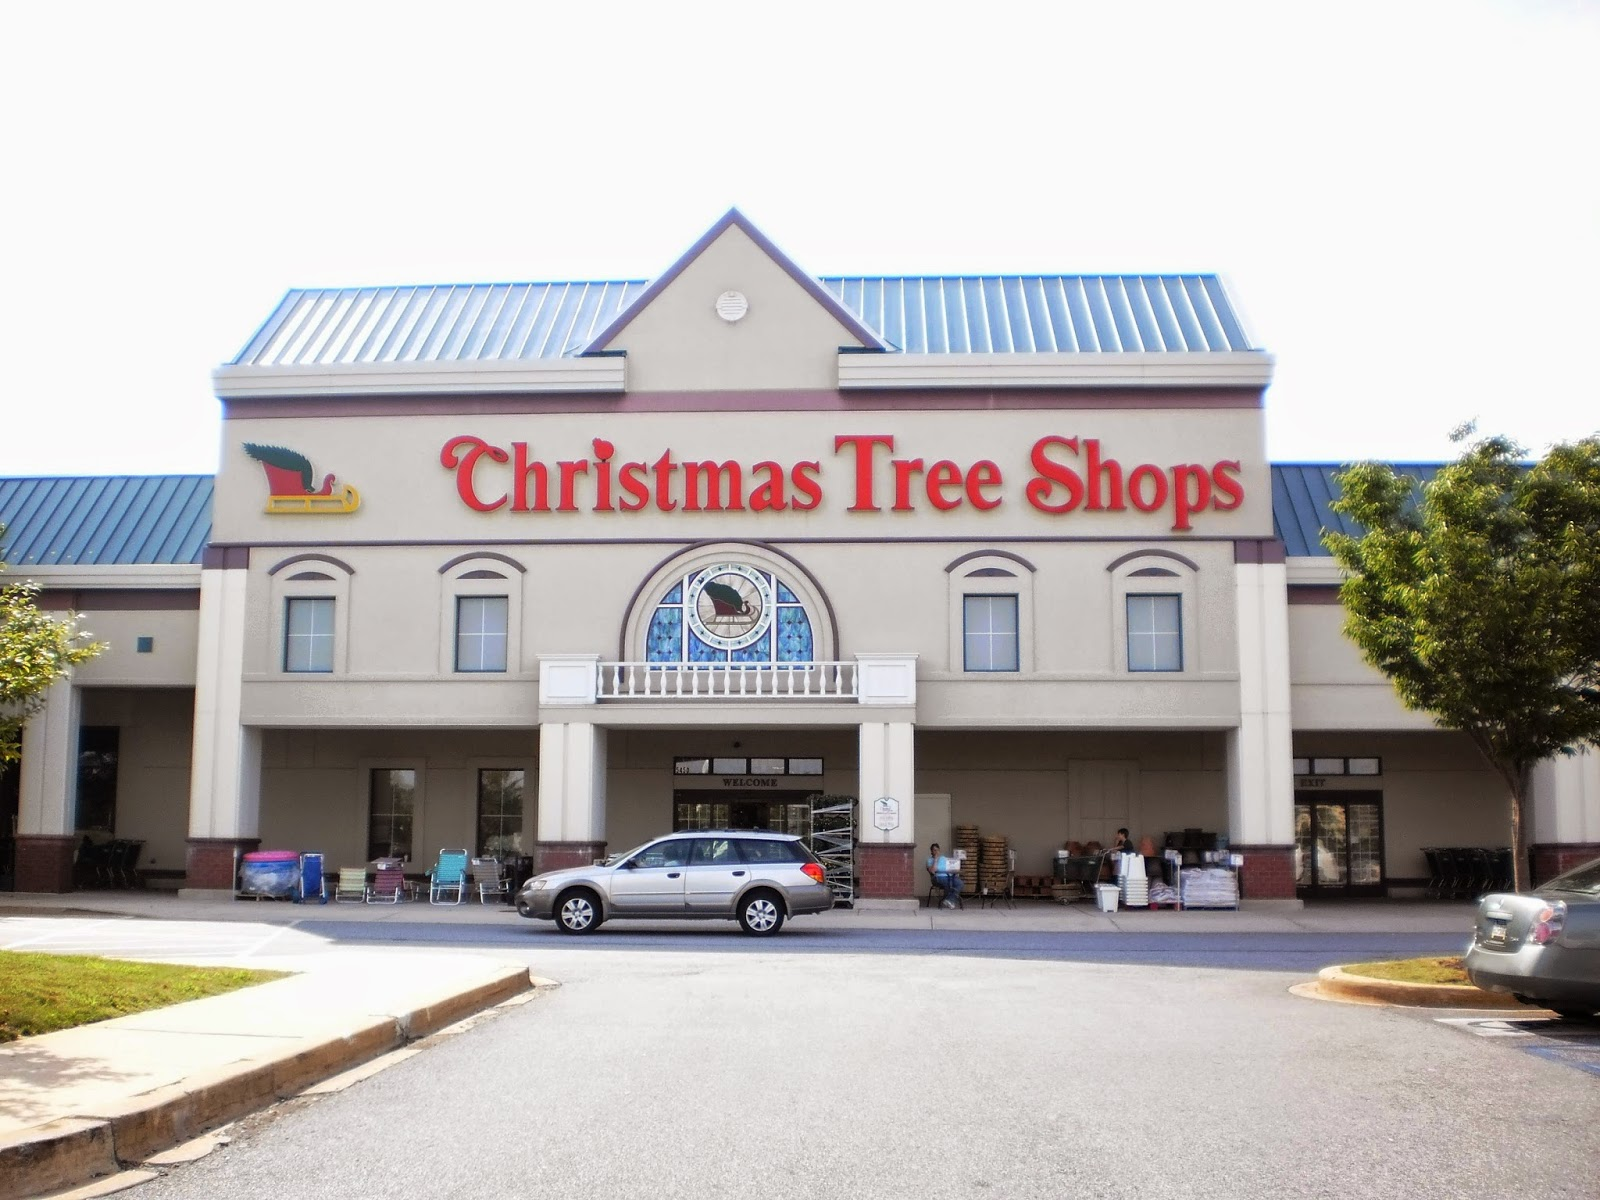 Find great deals on eBay for christmas tree shops and christmas tree shops coupon. Shop with confidence.